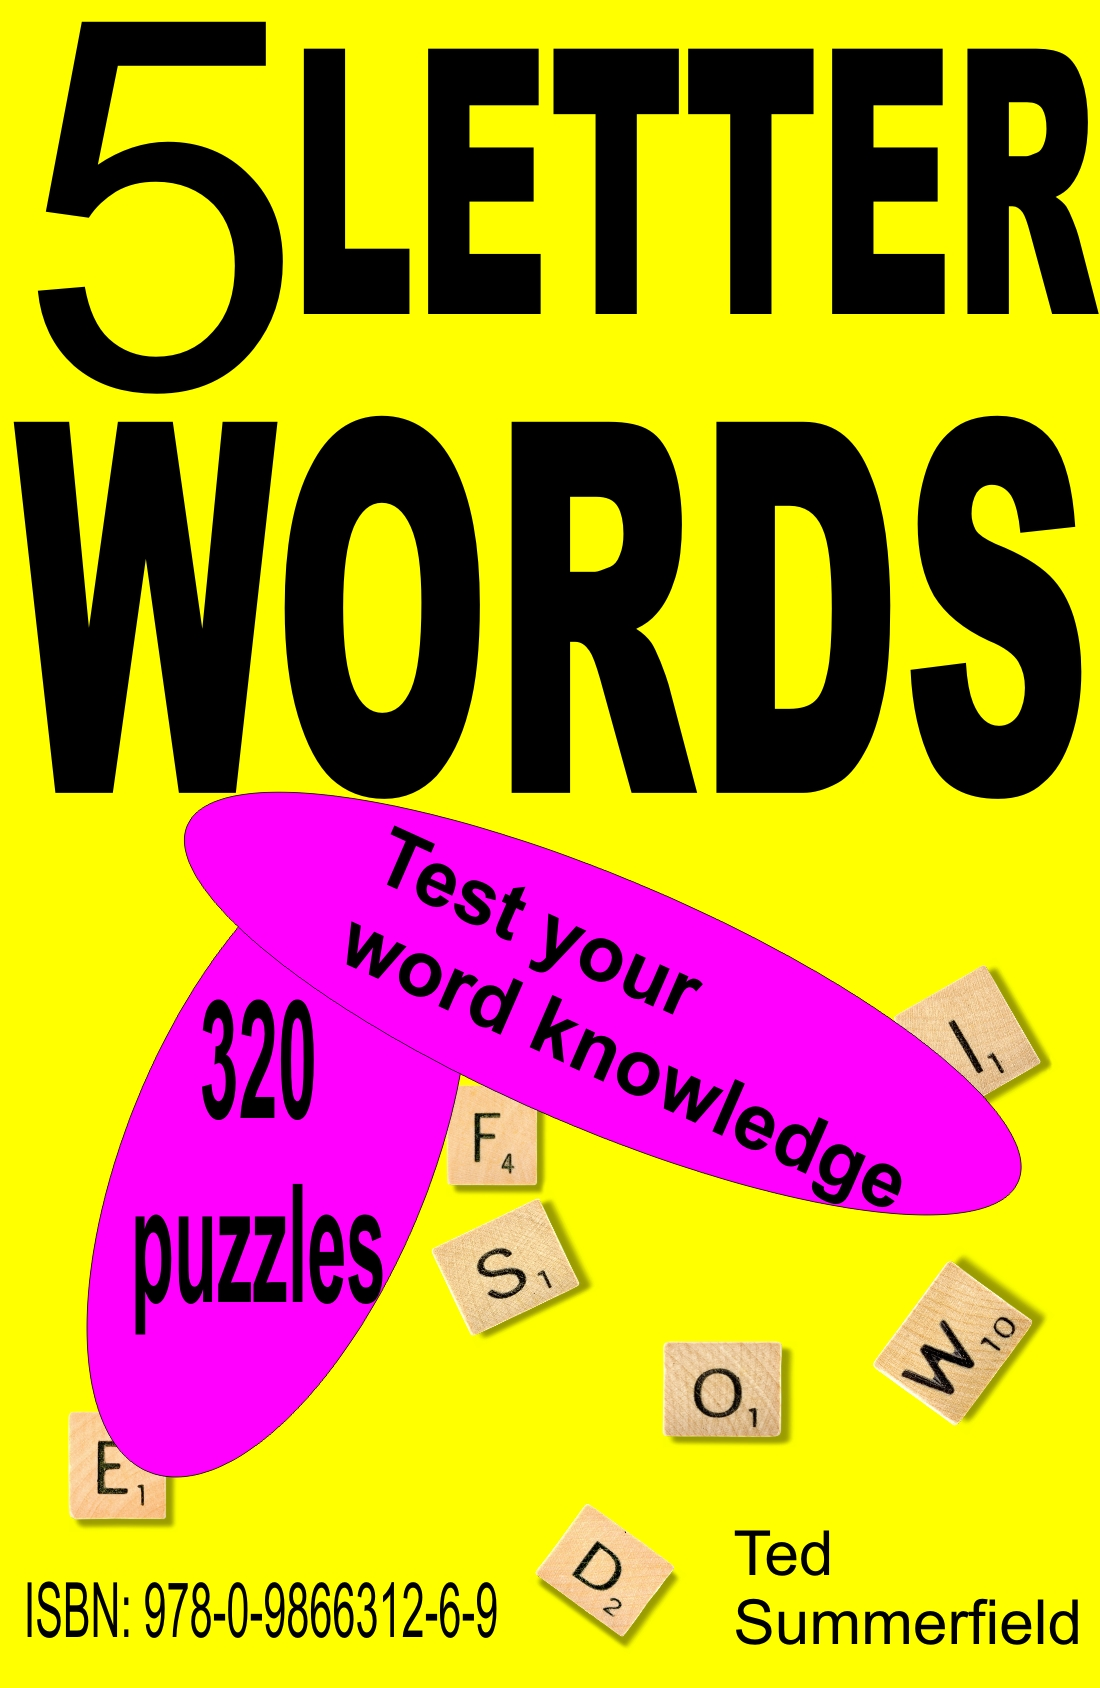 5 letter word puzzle 5 letter word puzzles now available ted summerfield aka 10097